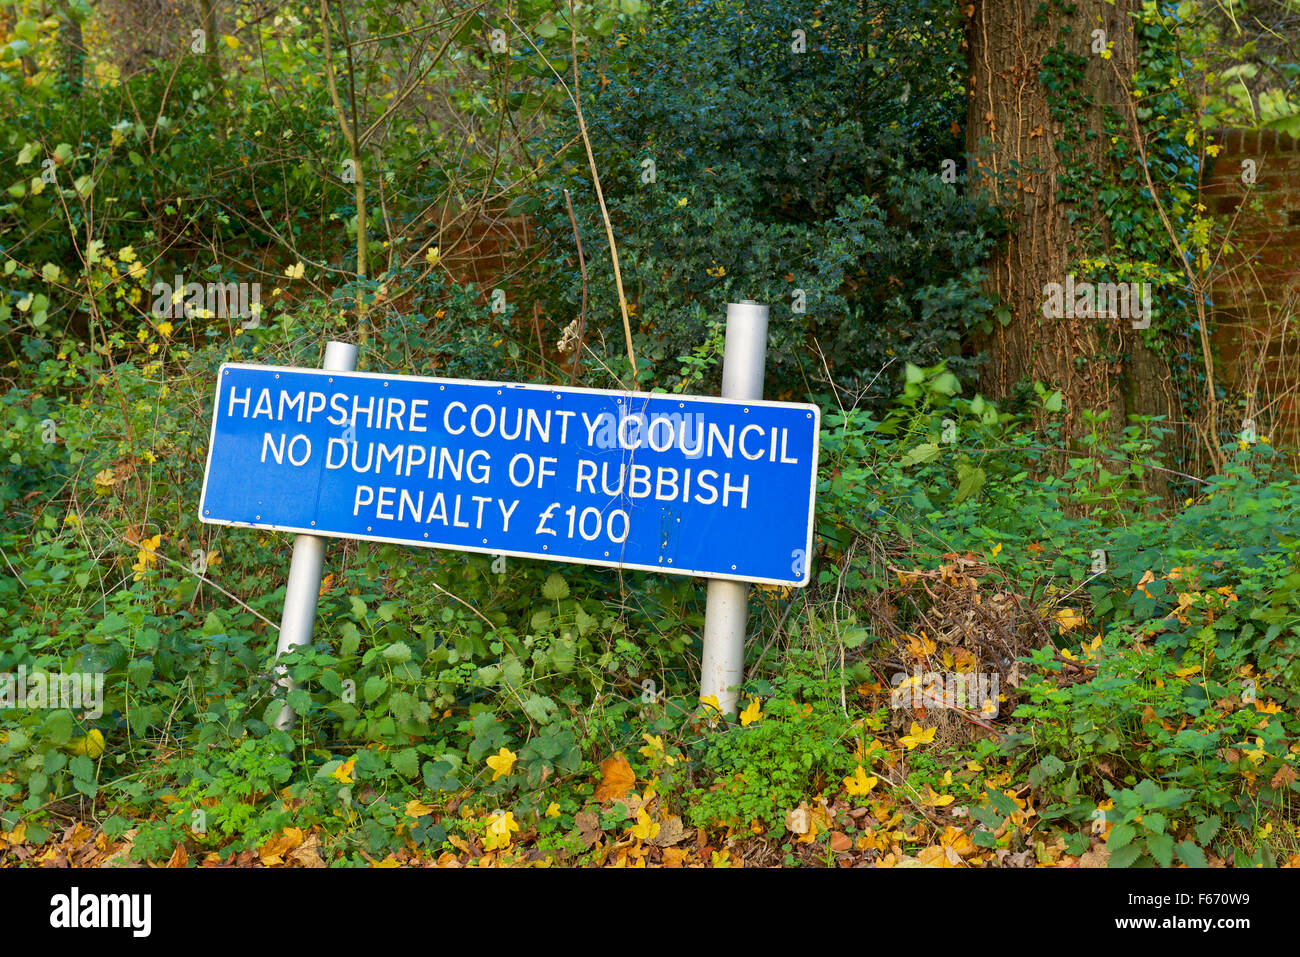 Sign erected by Hampshire County Council, no dumping of rubbish, England UK - Stock Image